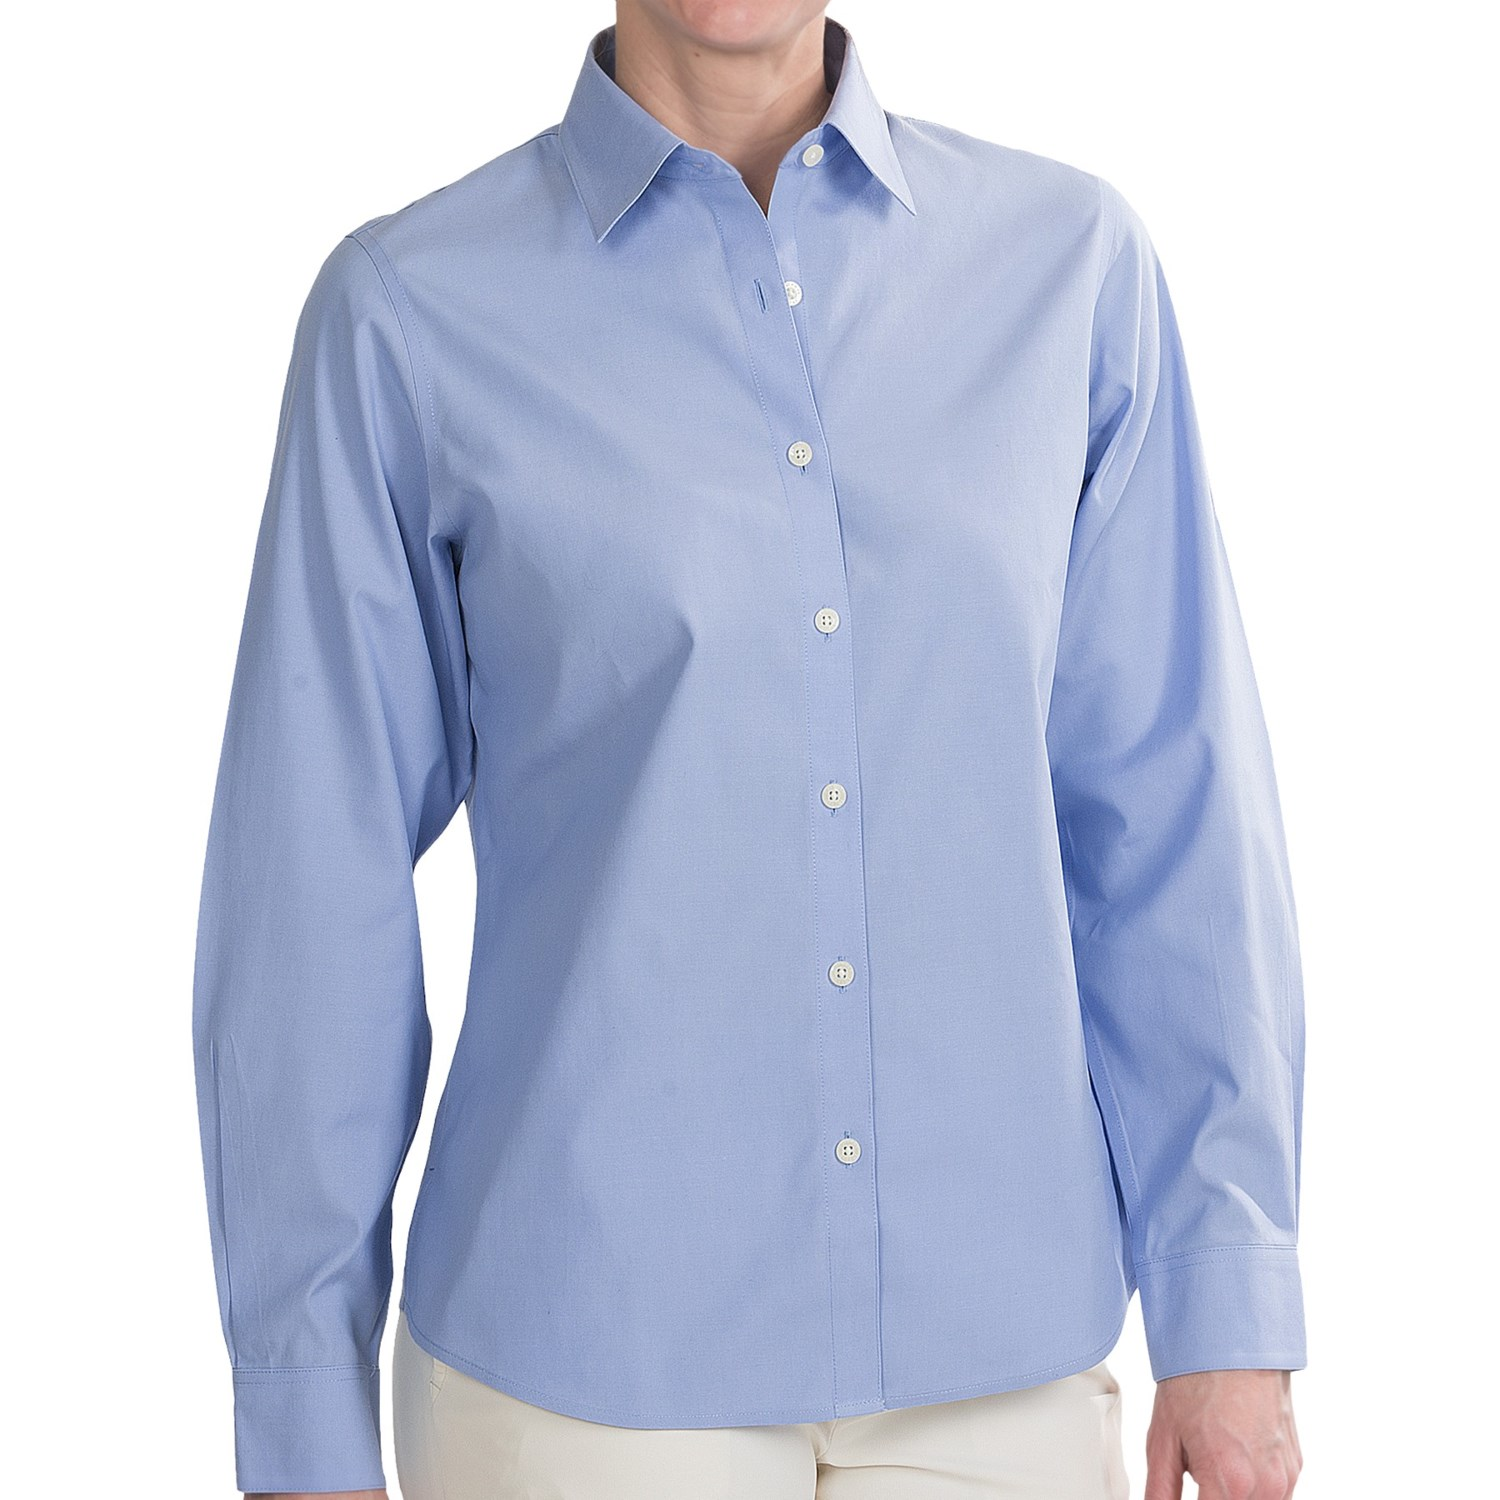 Fairway greene wrinkle free dress shirt for women Wrinkle free shirts for women